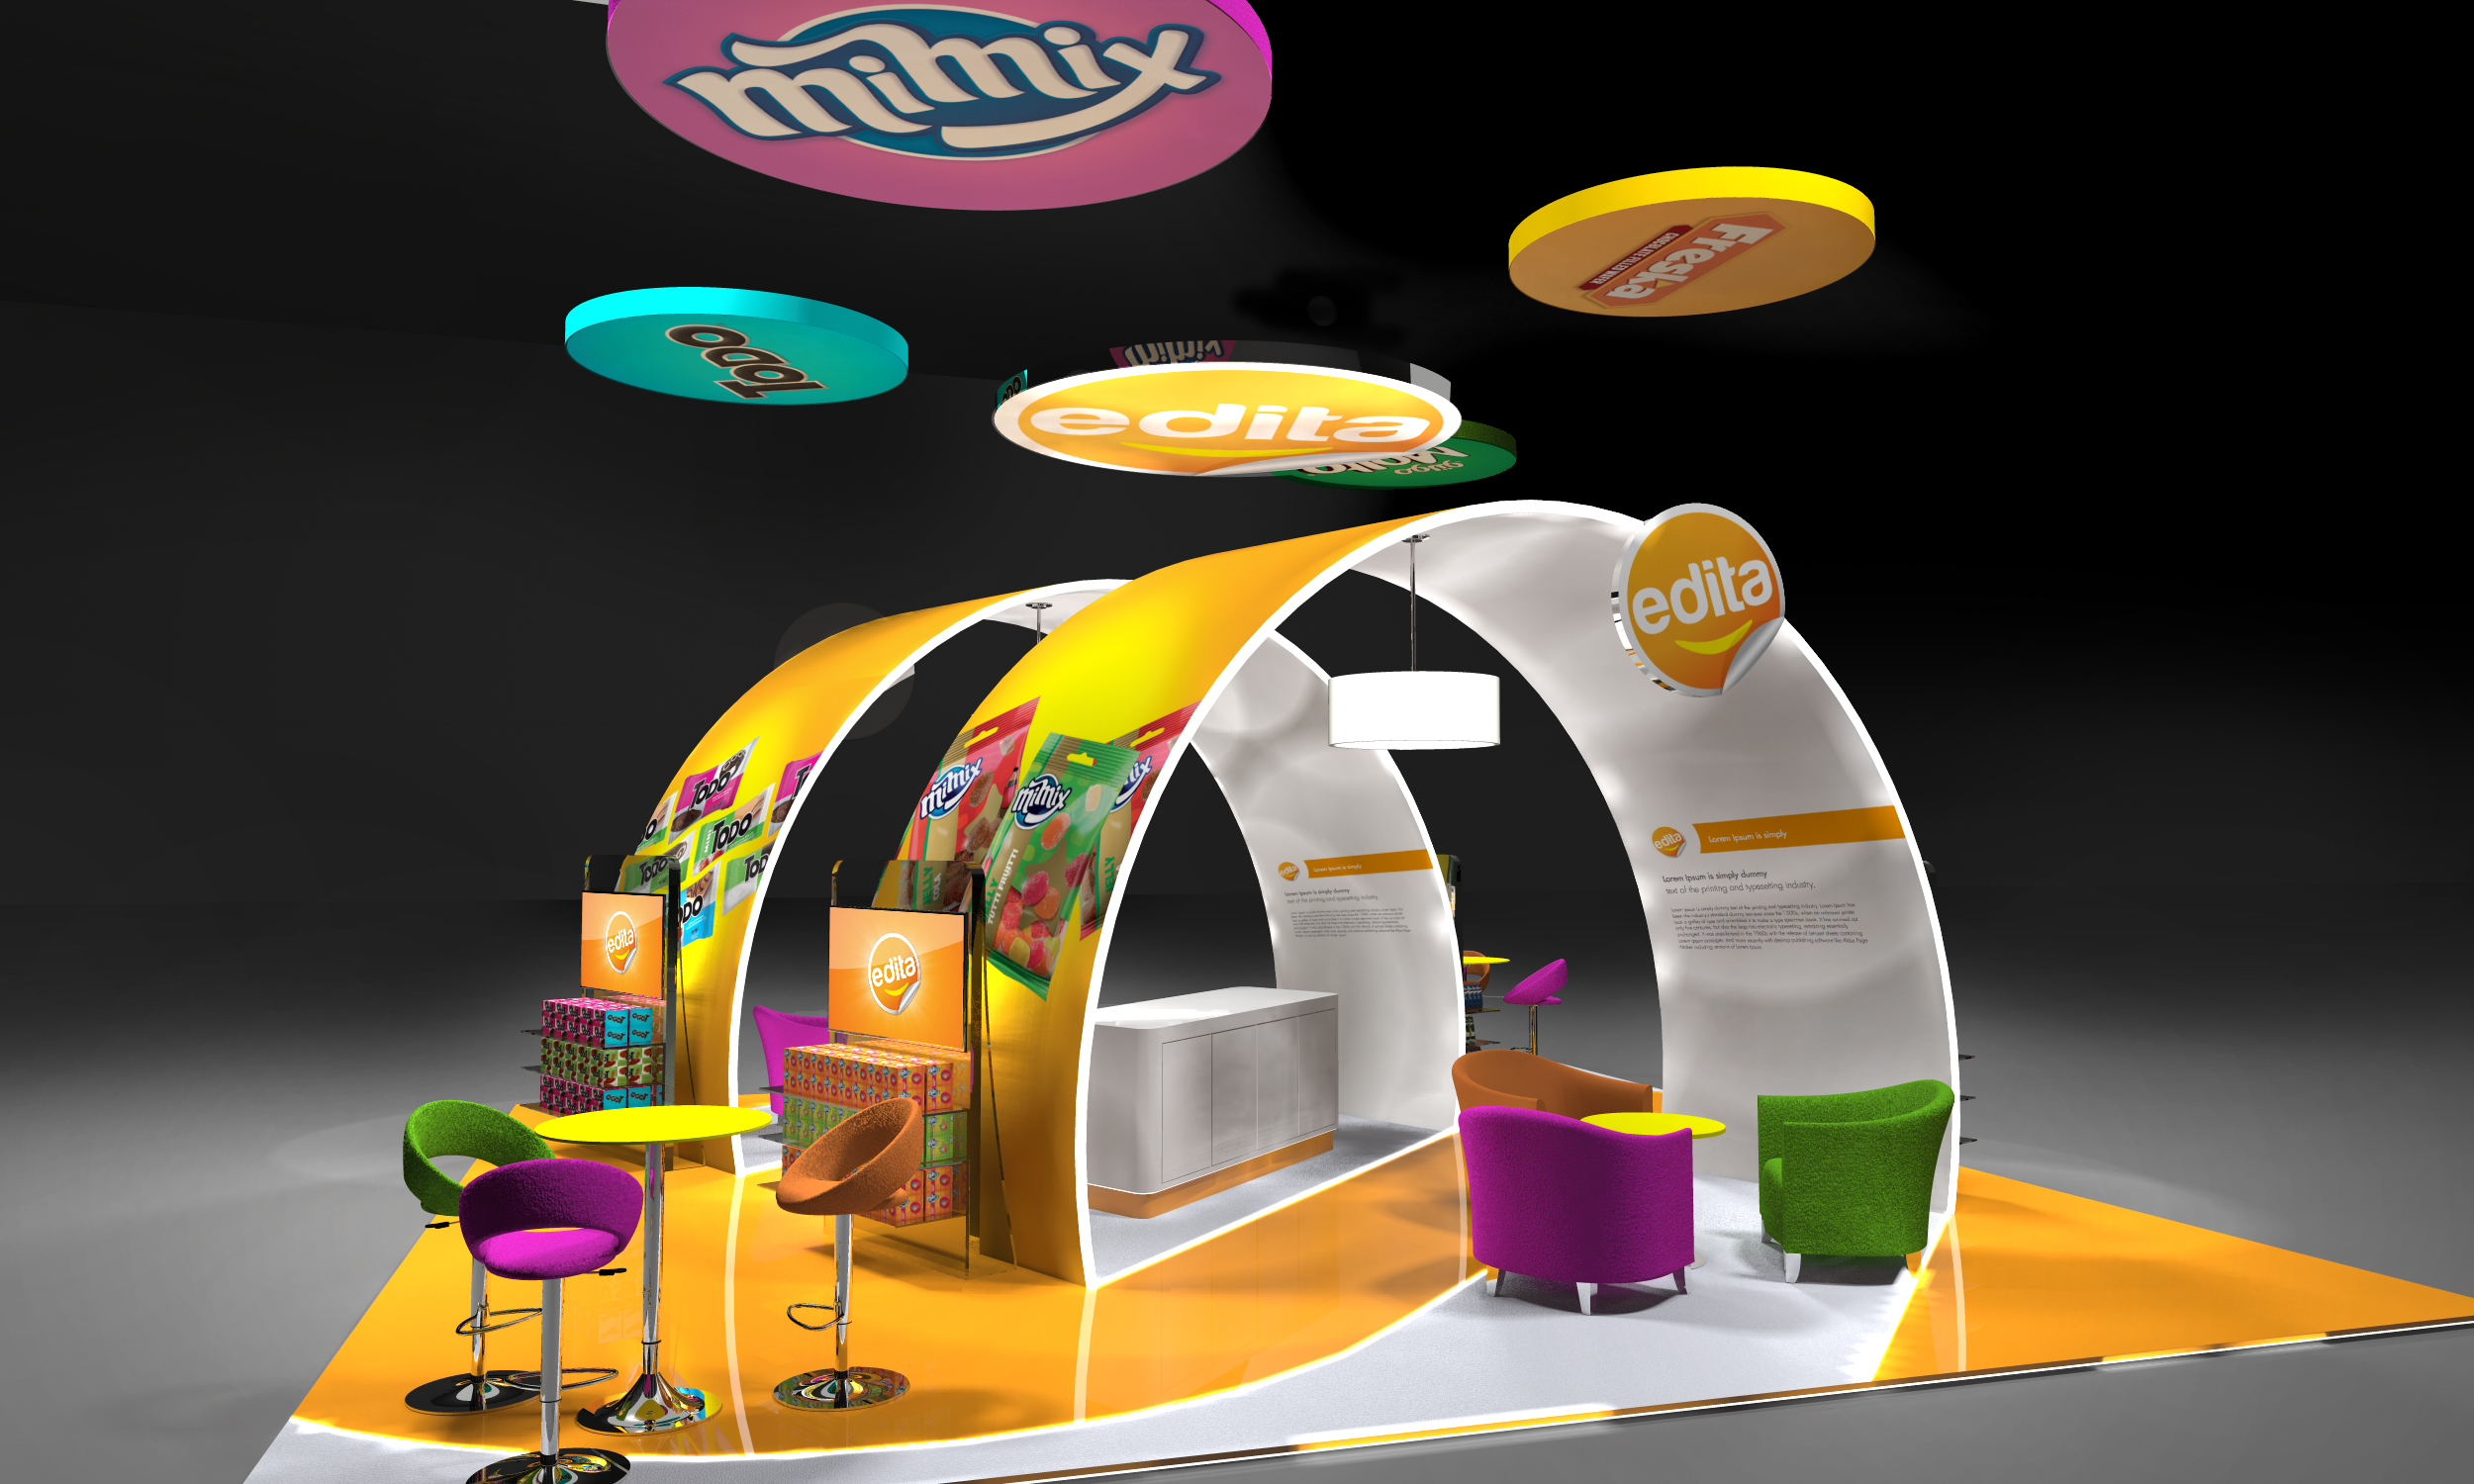 Edita Gulfood Exhibition Stand